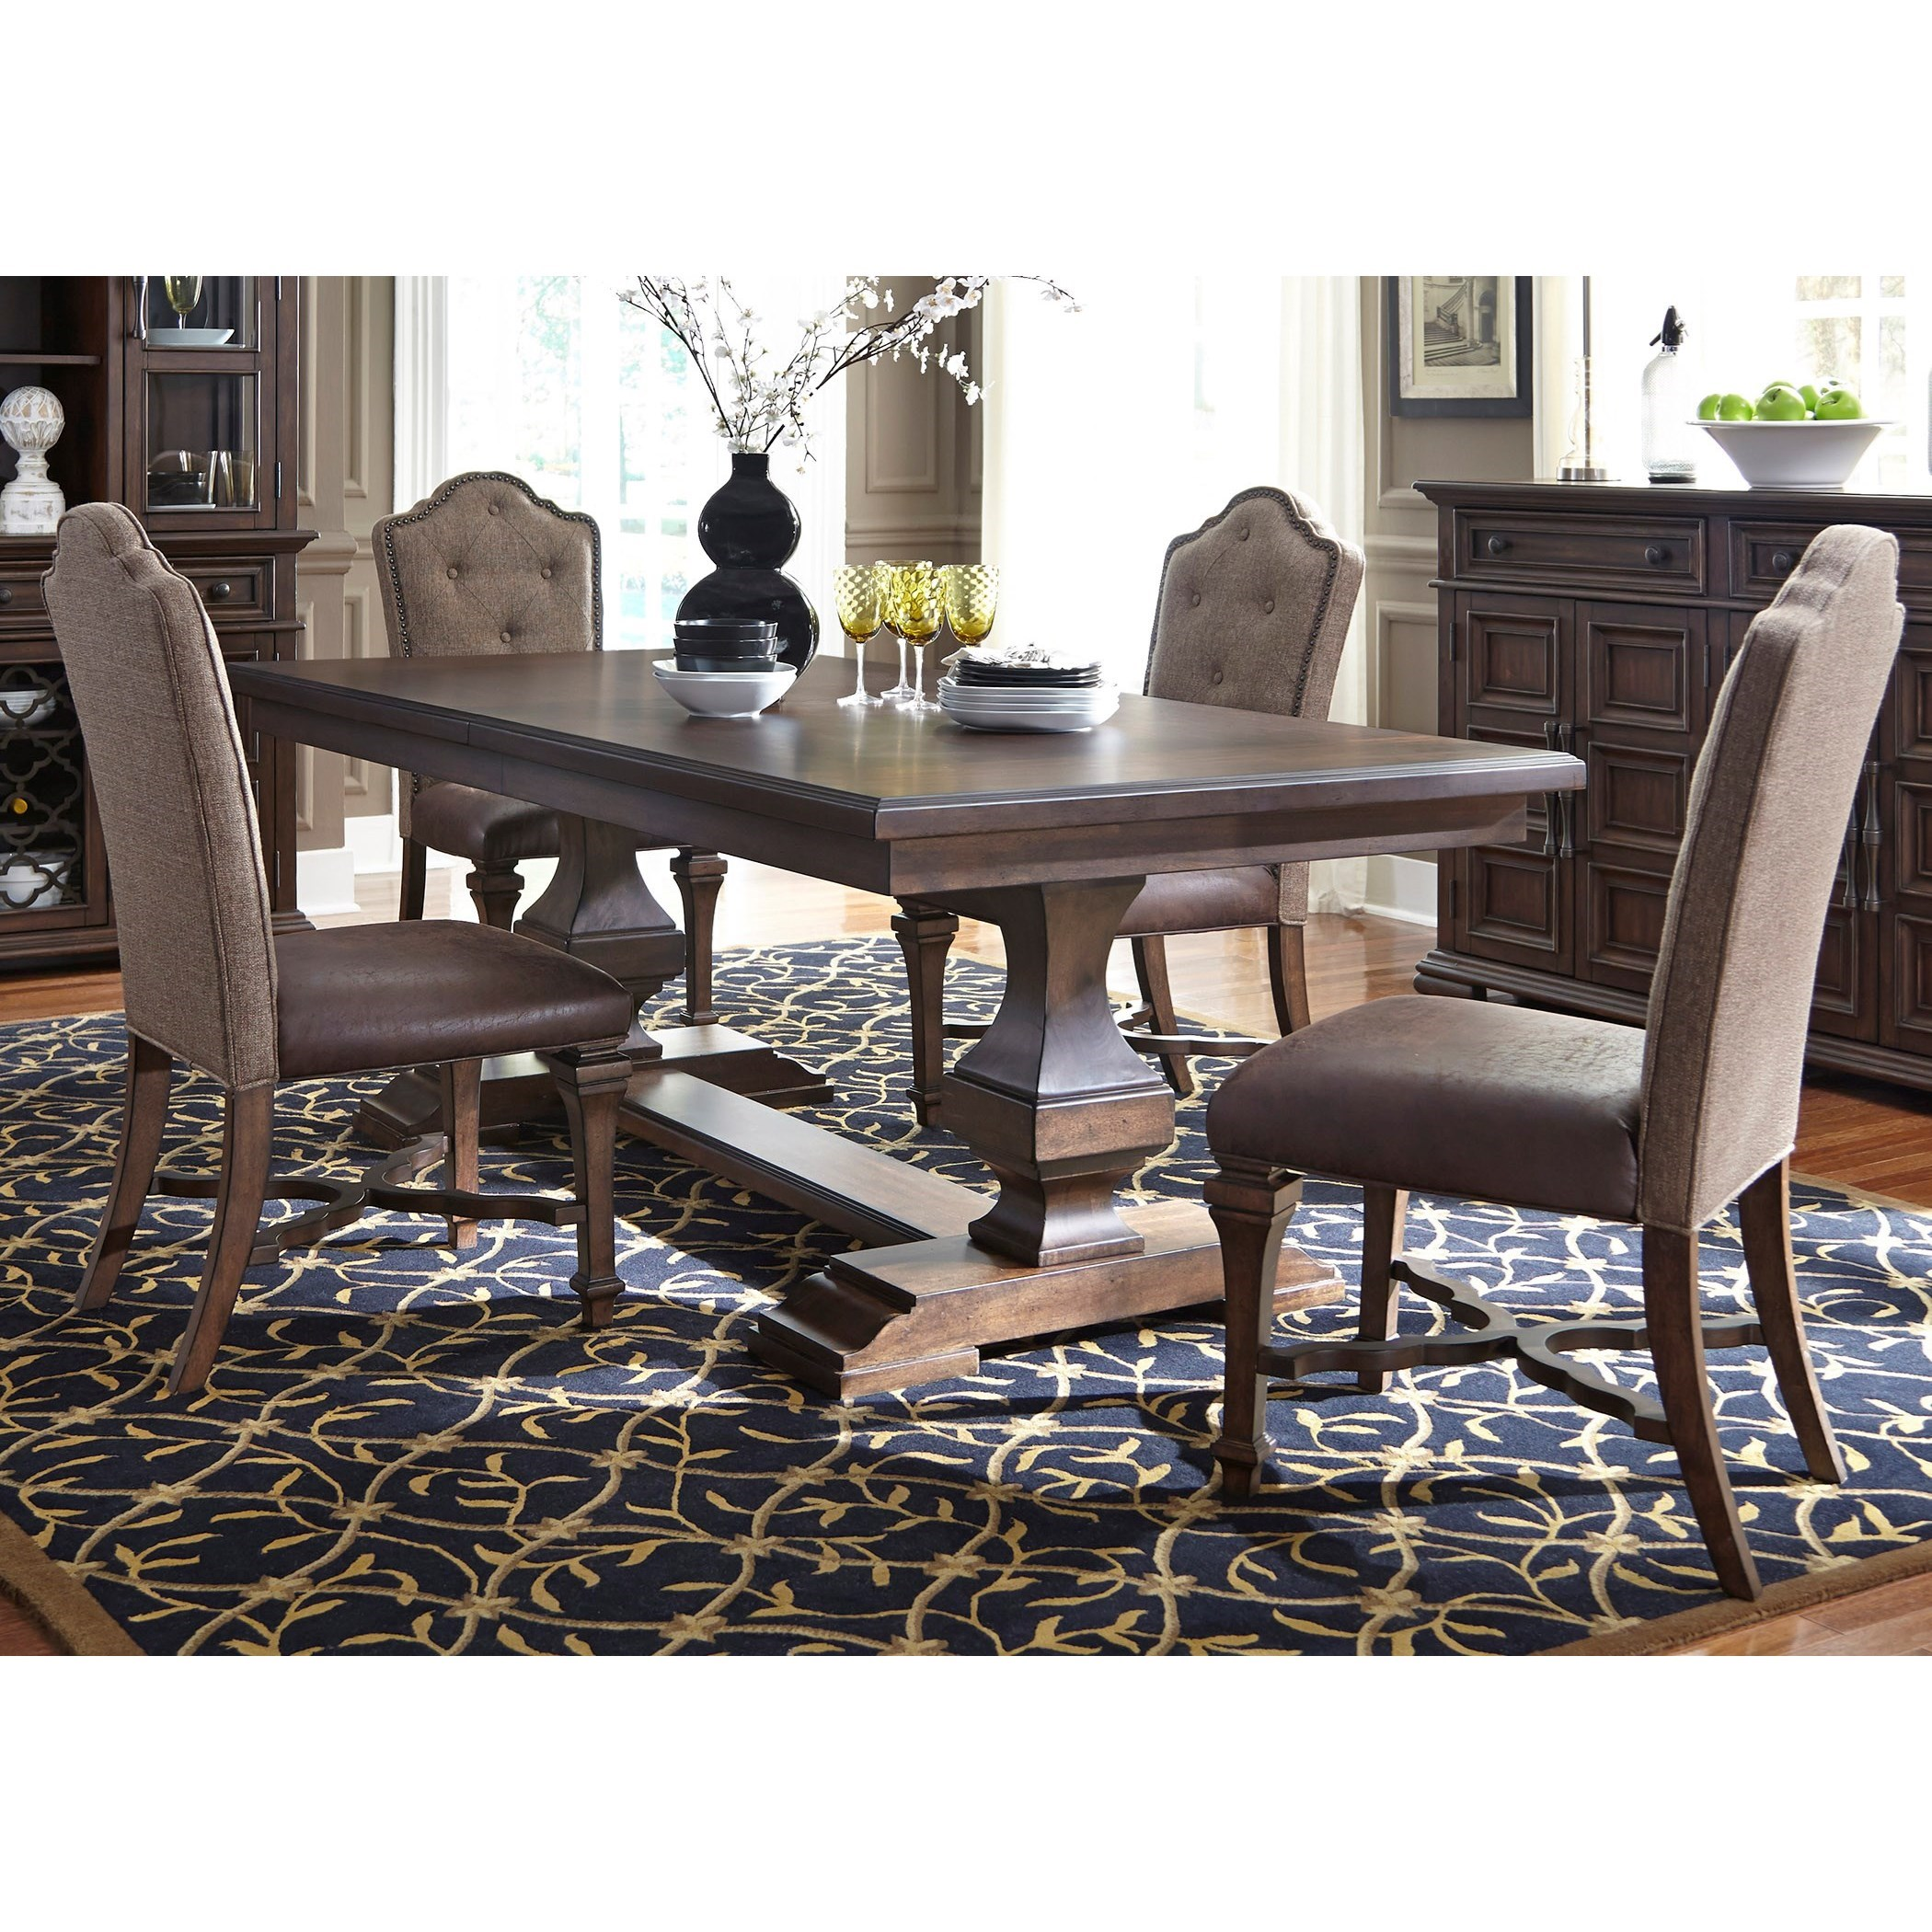 5 Chair Dining Set: Vendor 5349 Lucca 535-DR-52PS Formal 5 Piece Two Pedestal